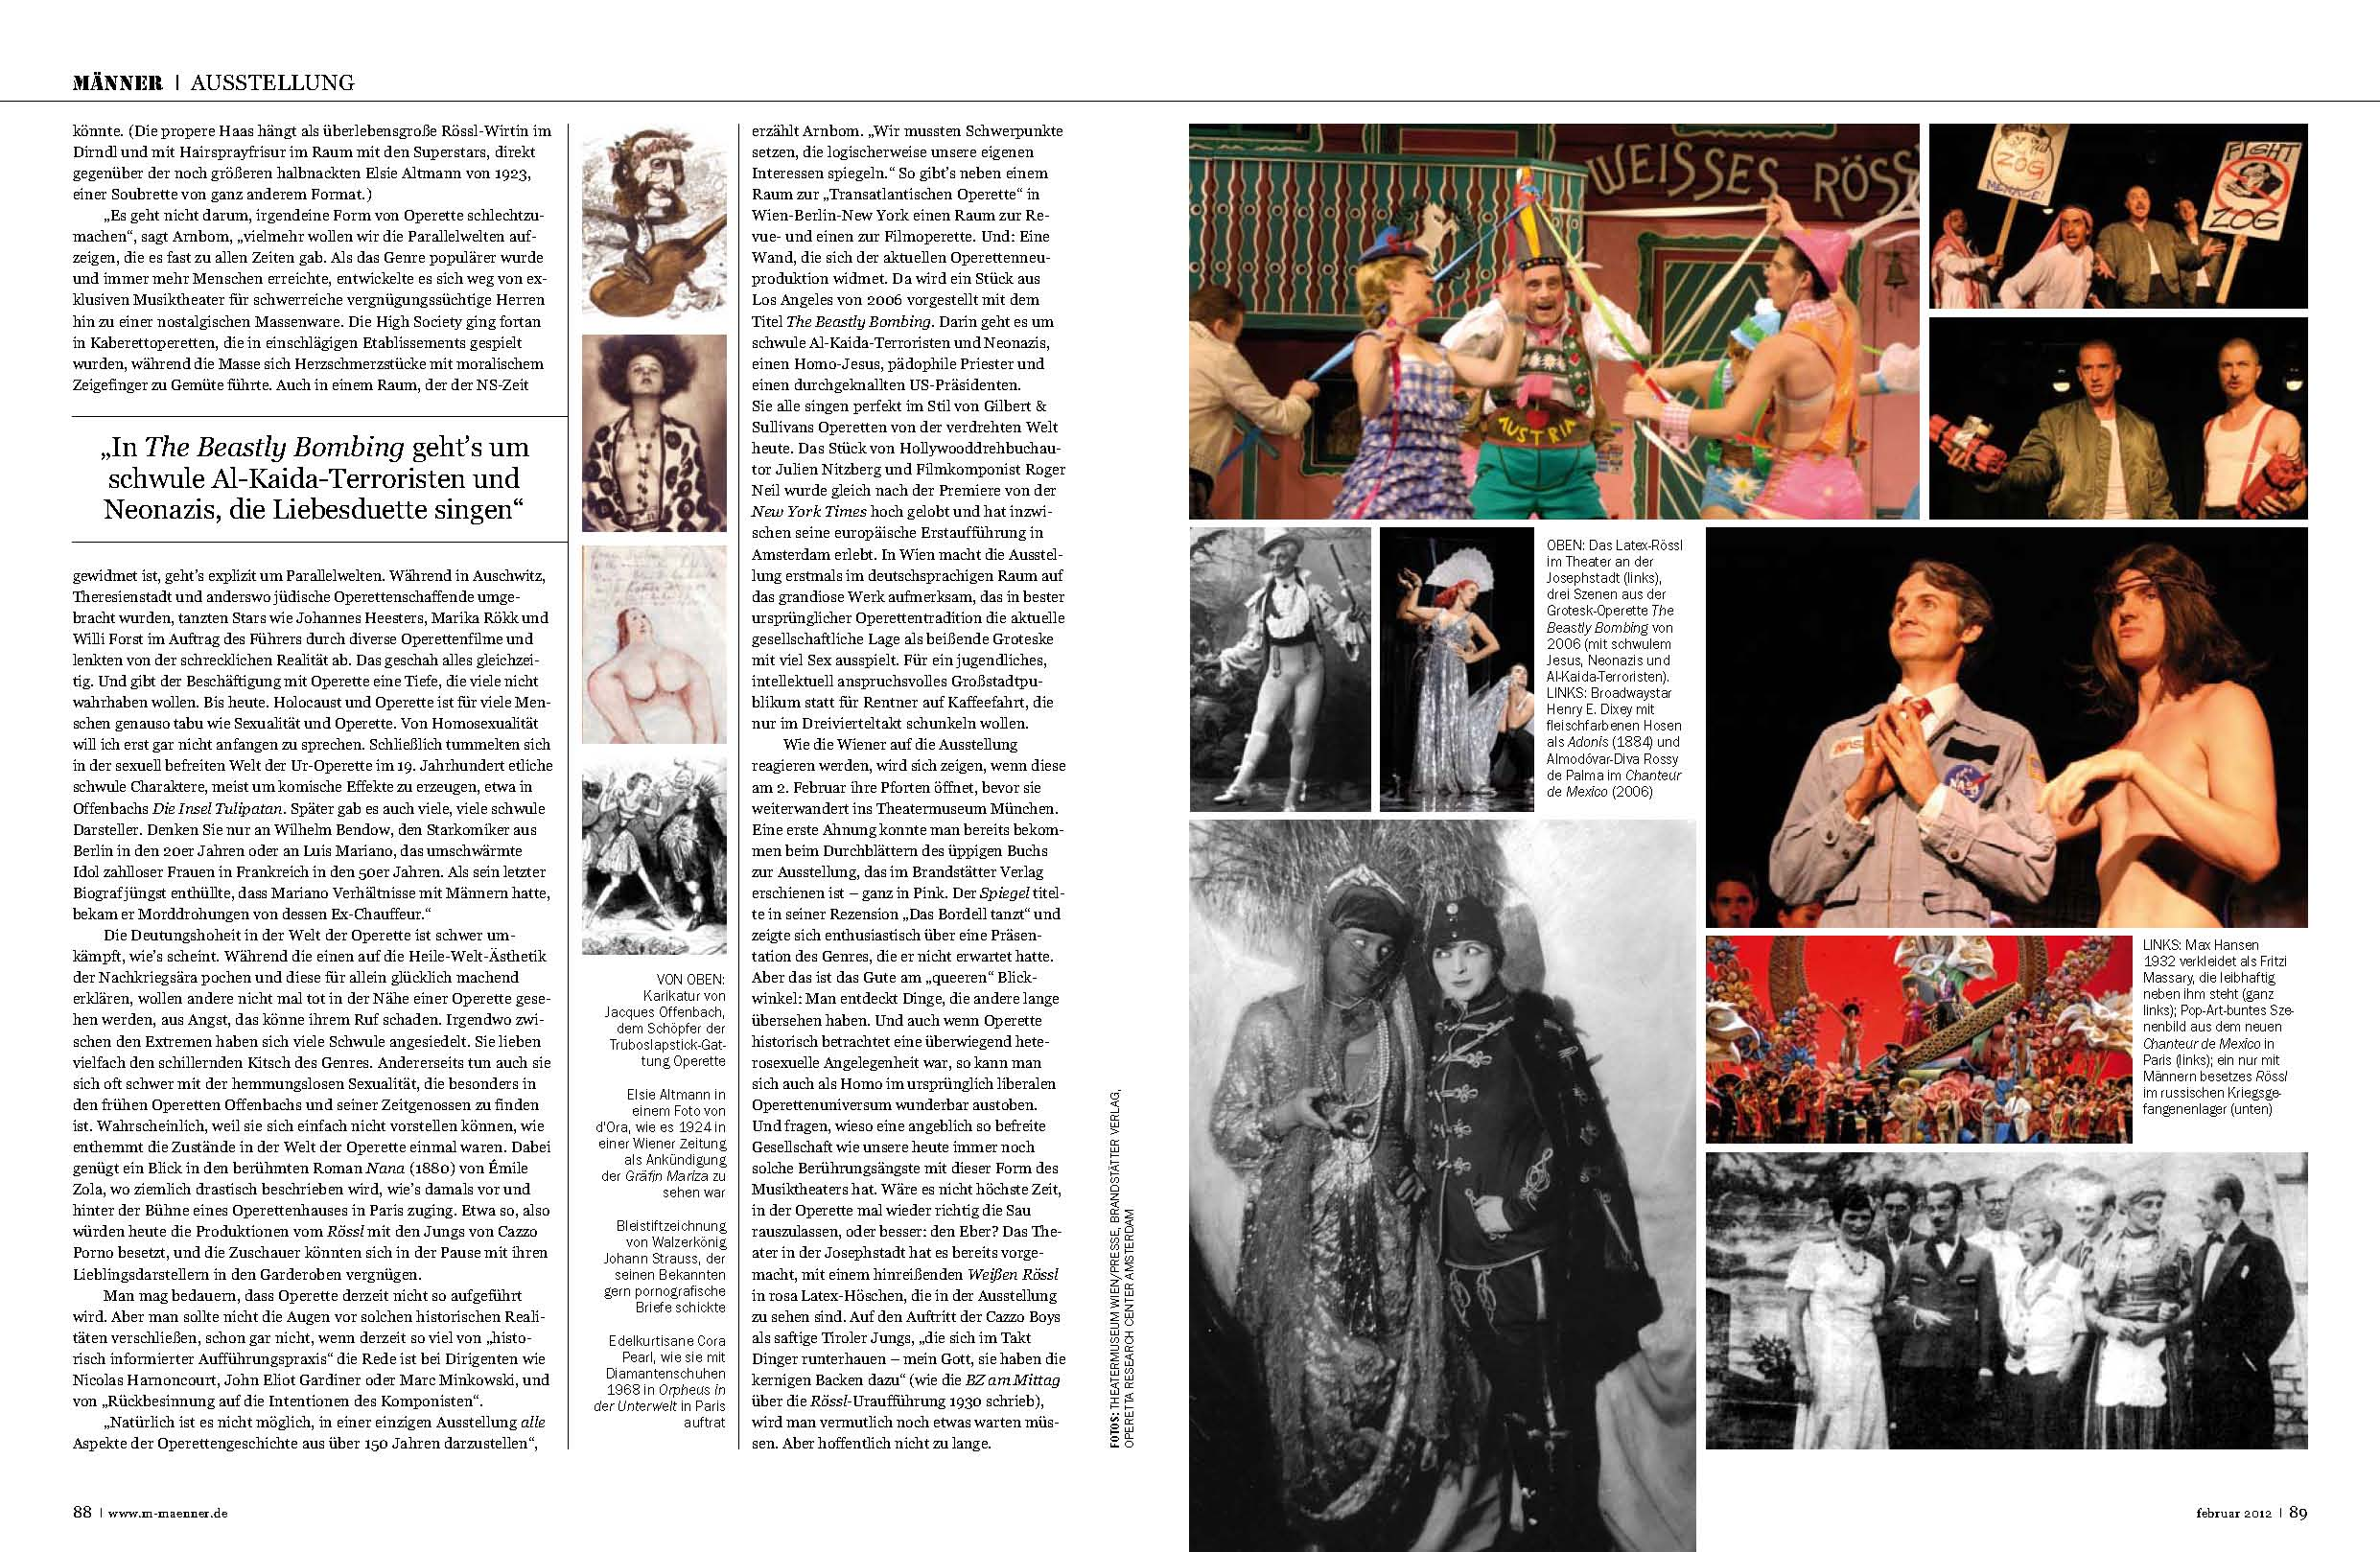 Second double page from the MÄNNER operetta spread.